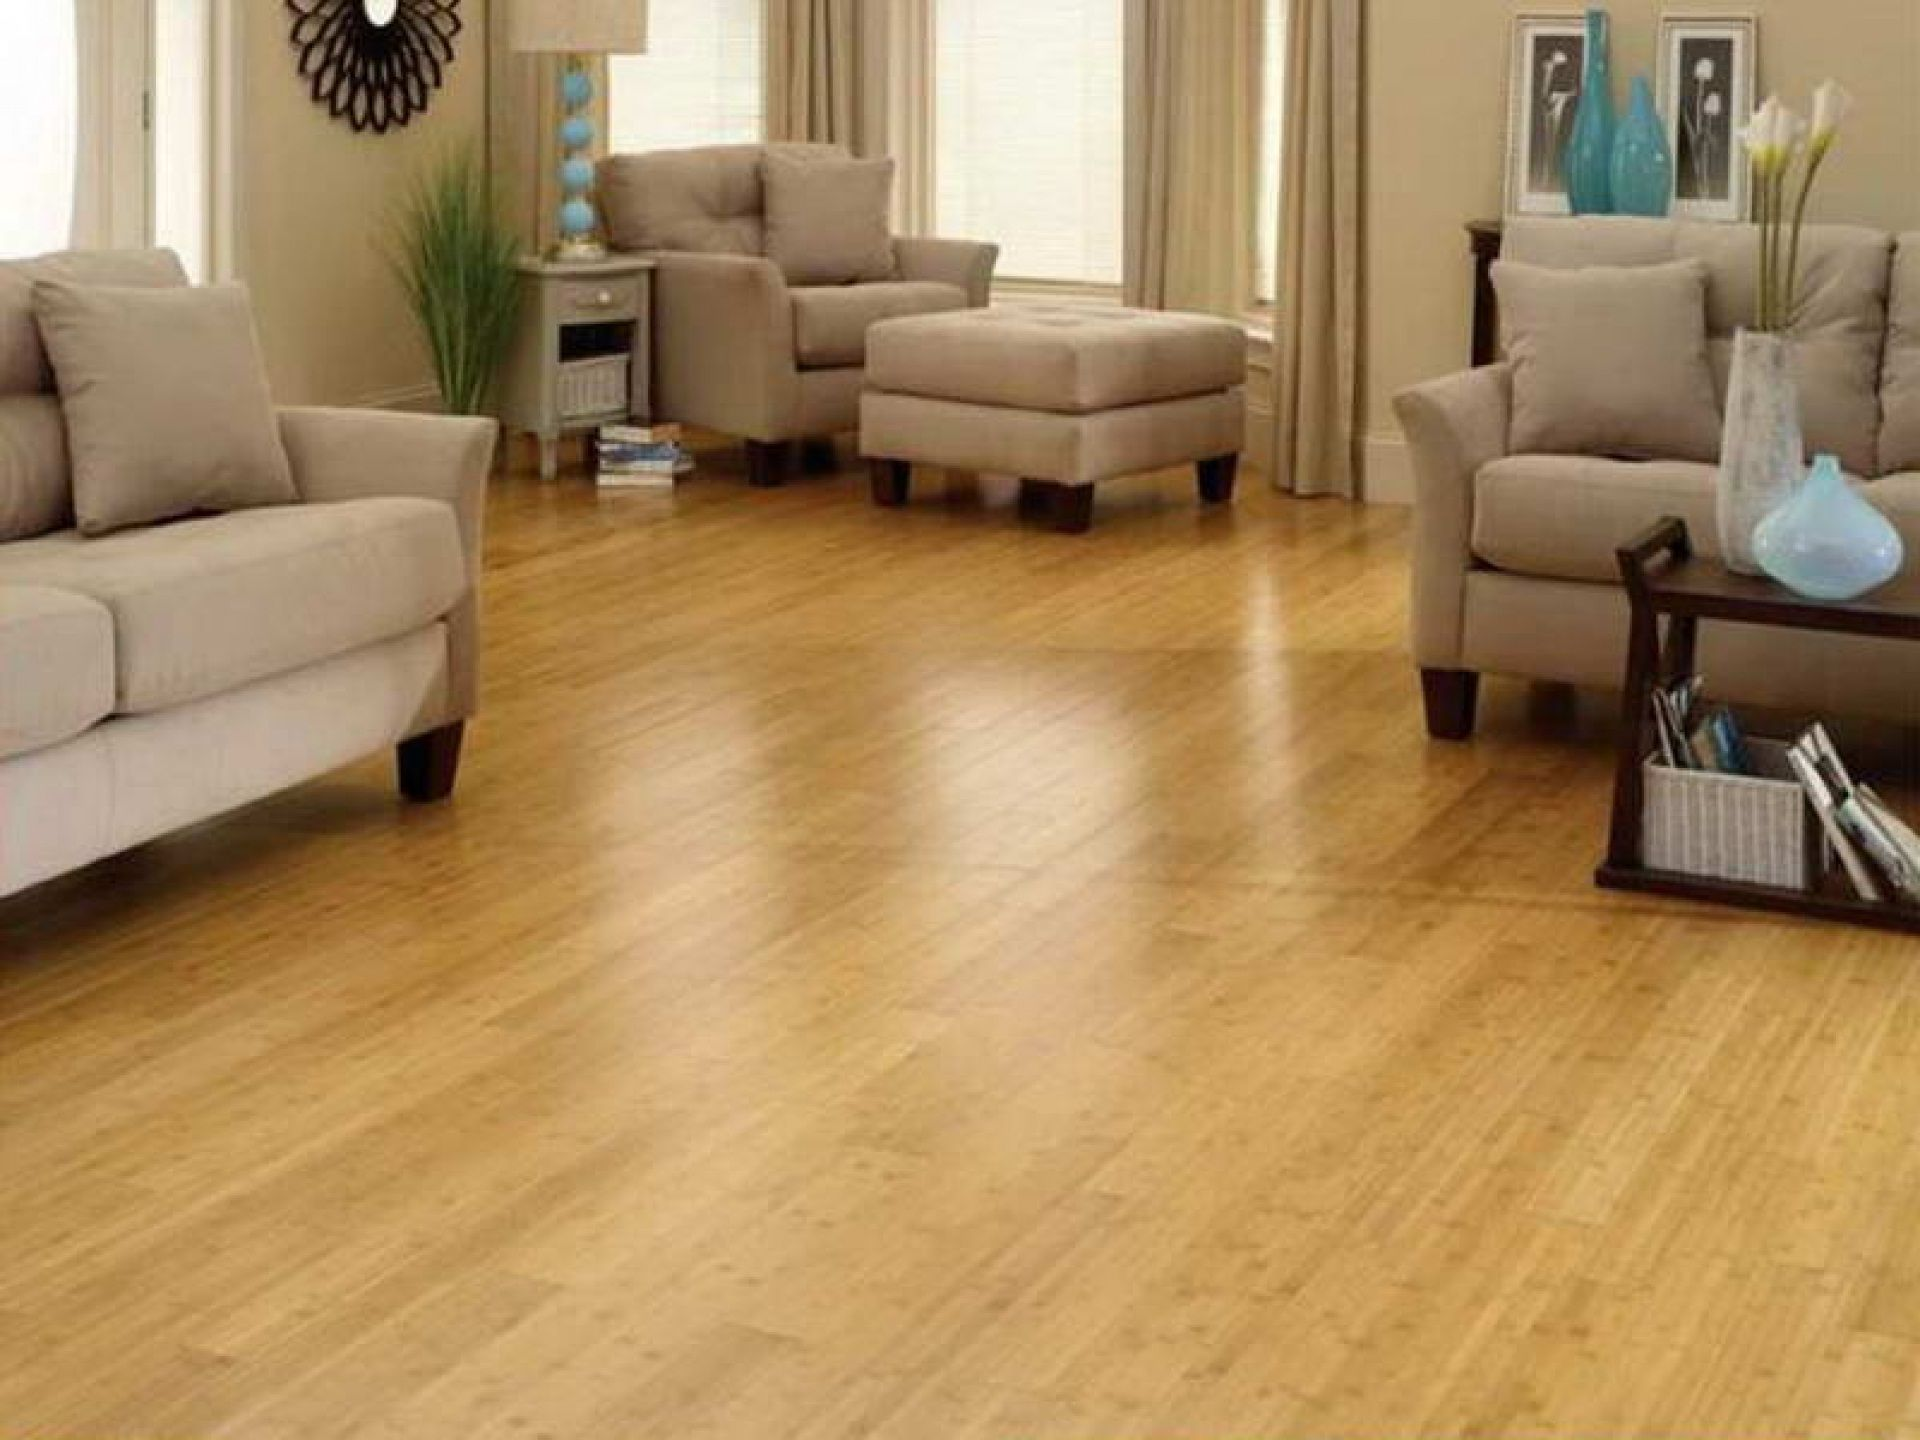 Cool Morning Star Bamboo Flooring (With images) Bamboo